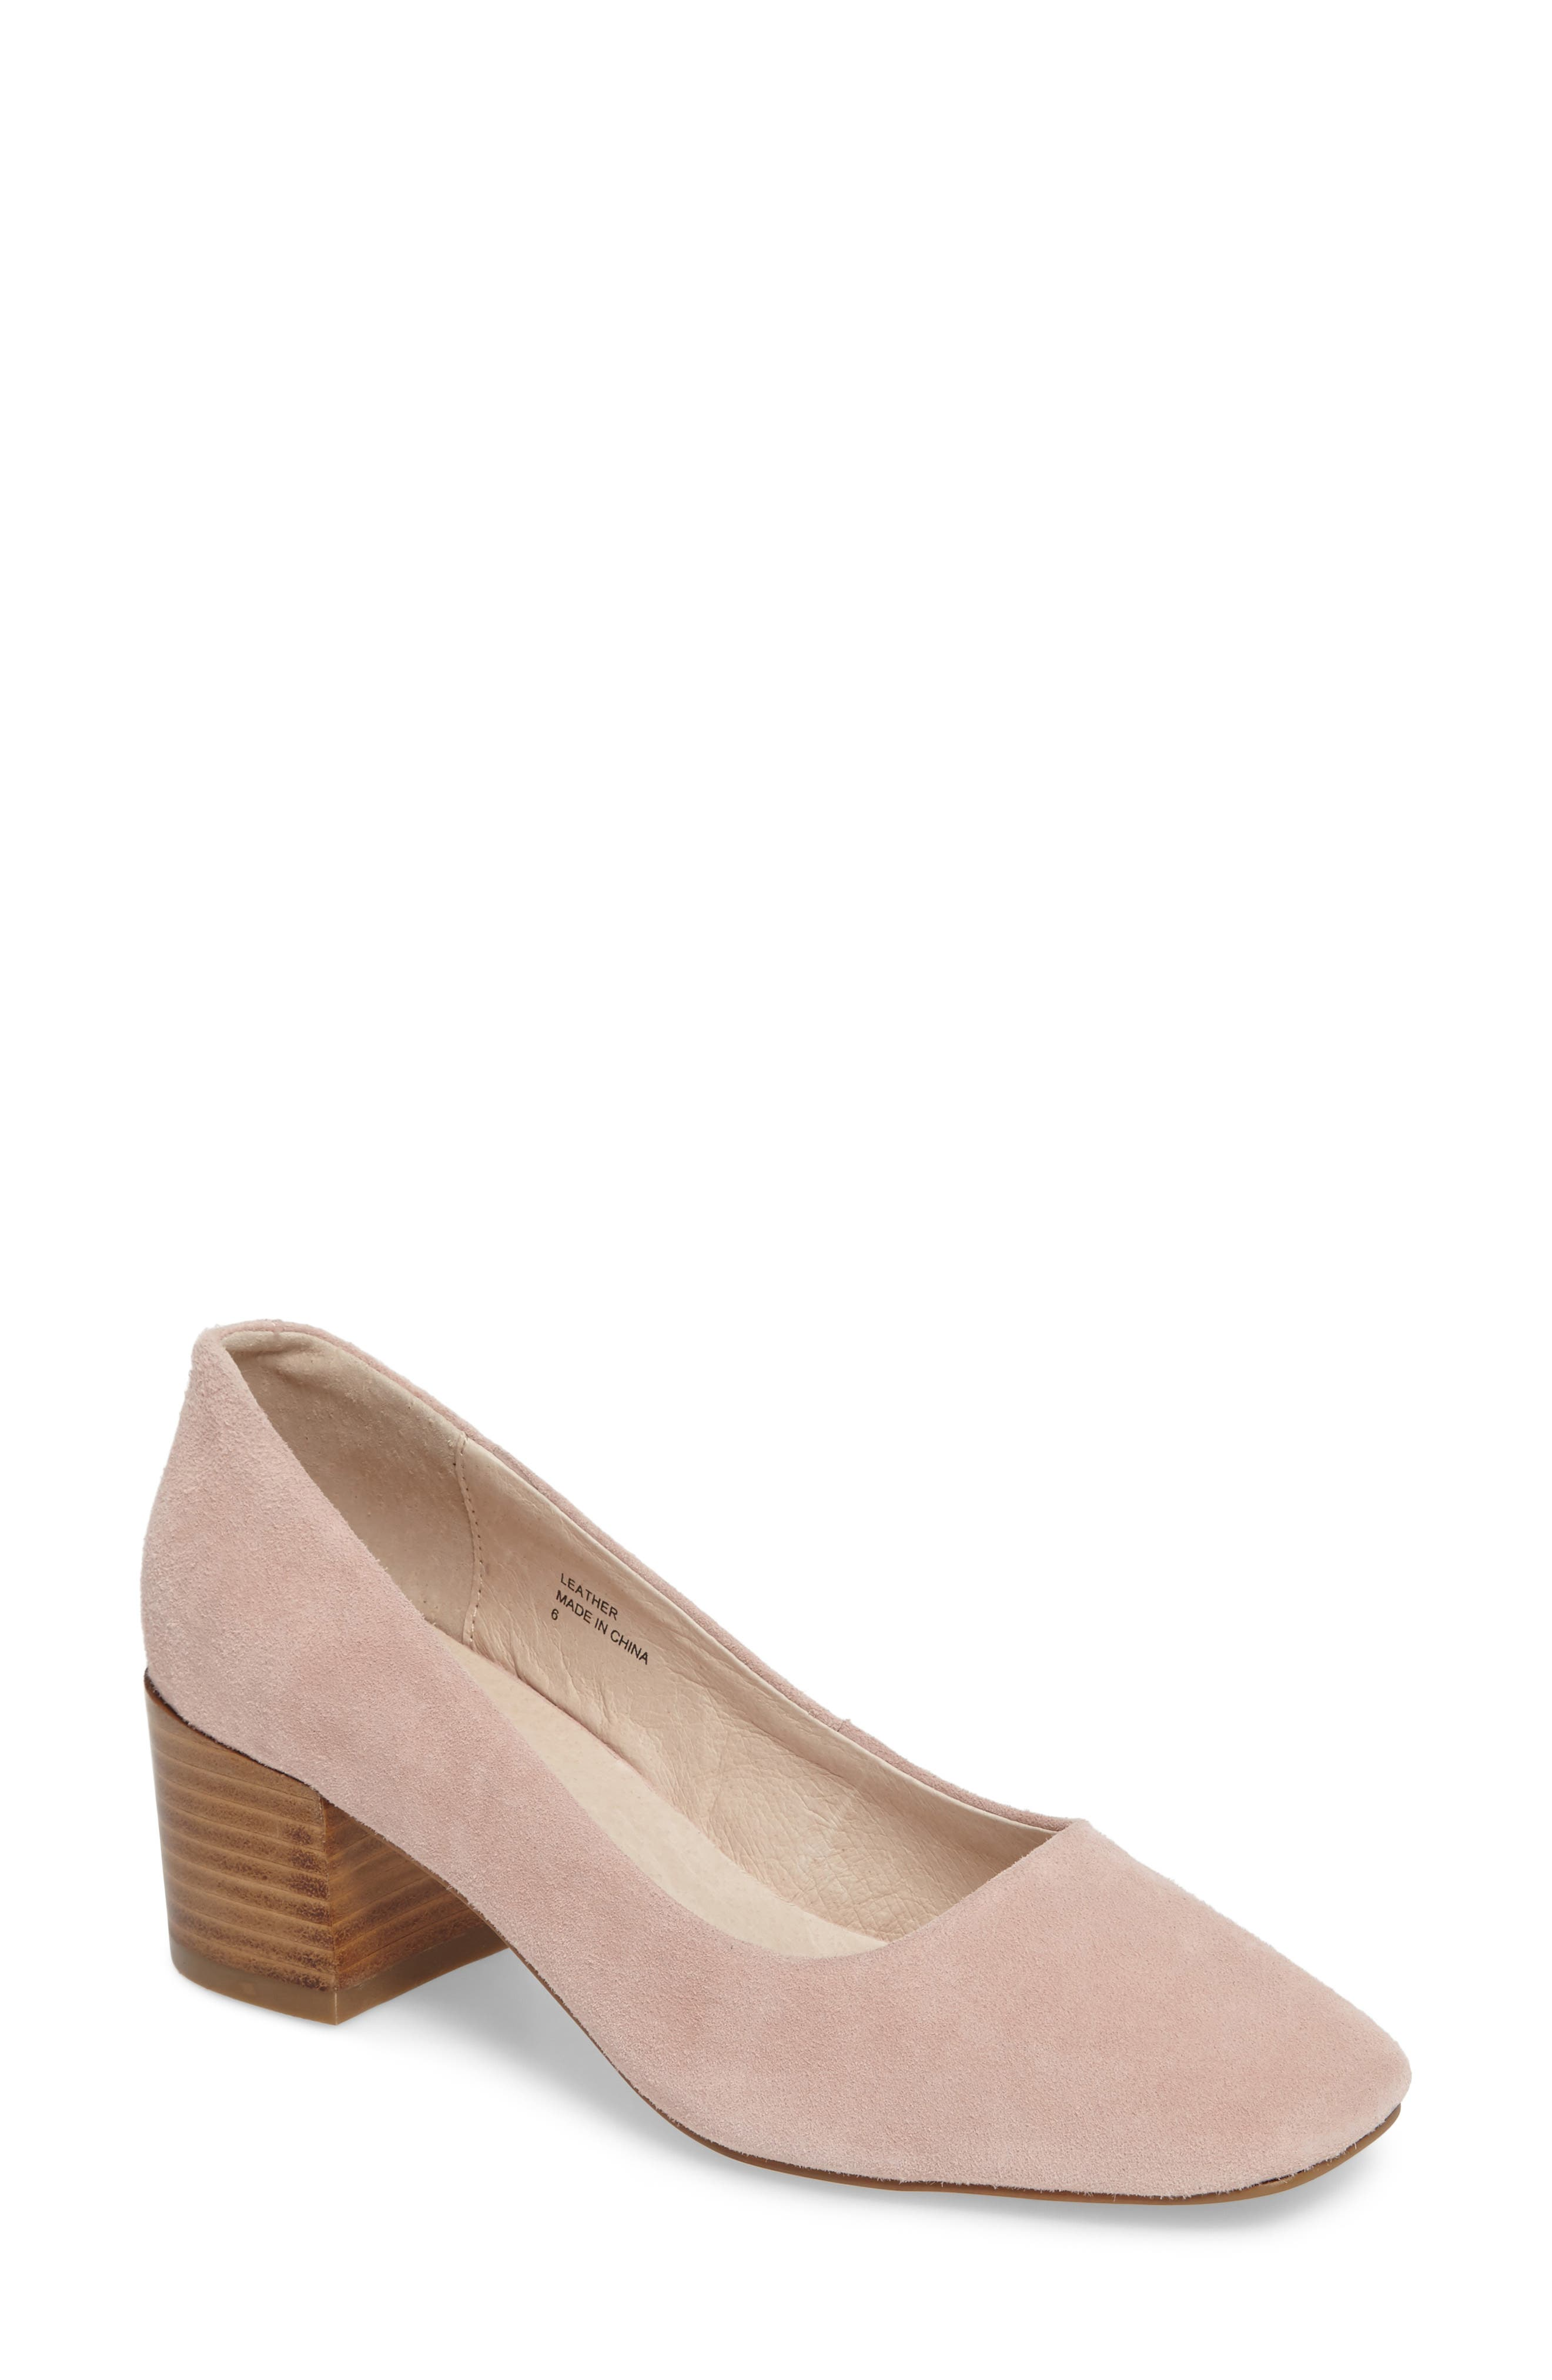 Grey City Tweed Square-Toe Pump (Women)